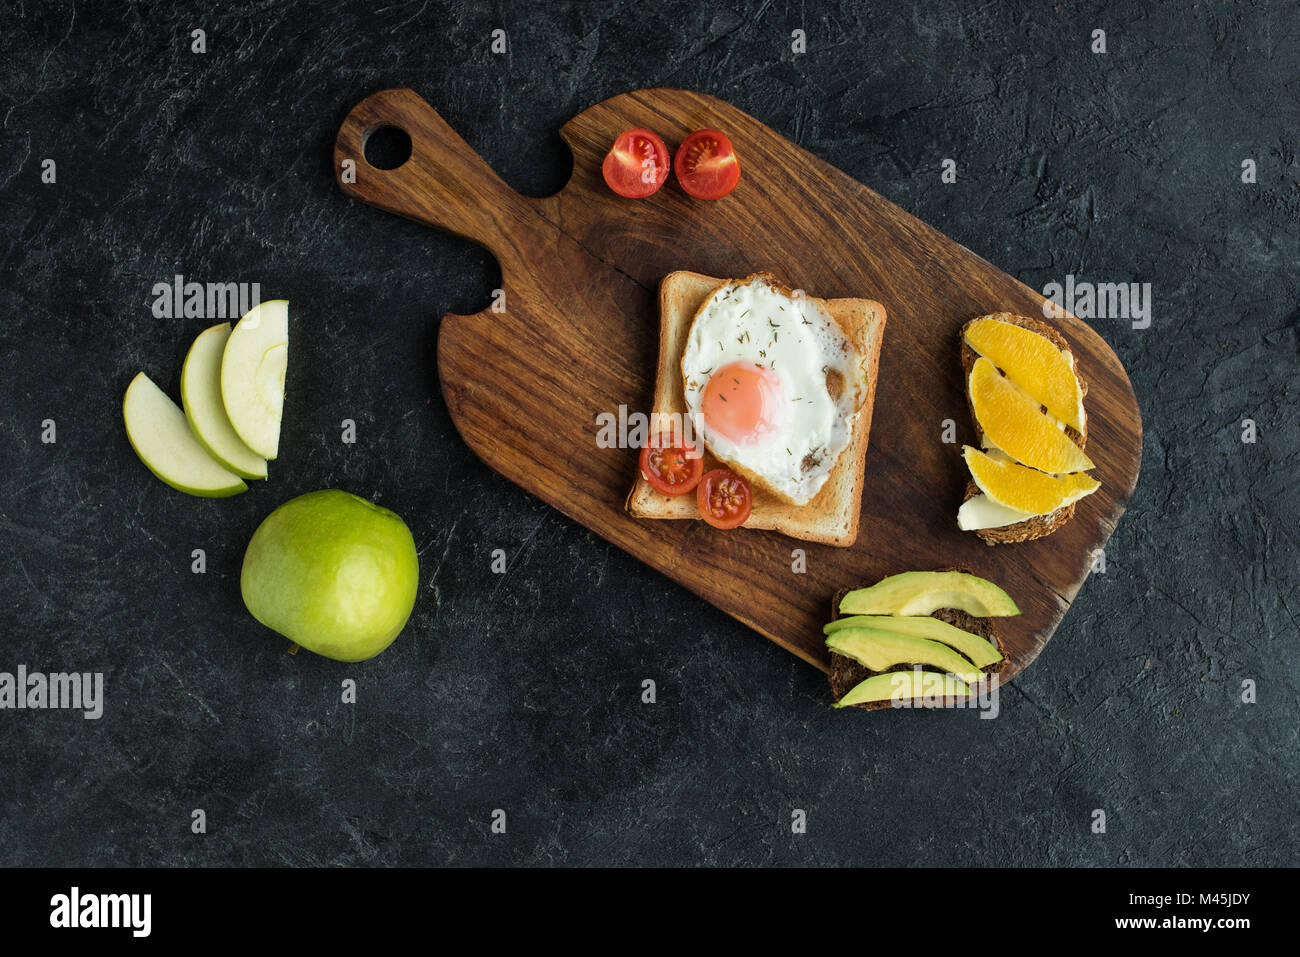 top view of toast with fried egg and cherry tomatoes for breakfast on cutting board - Stock Image